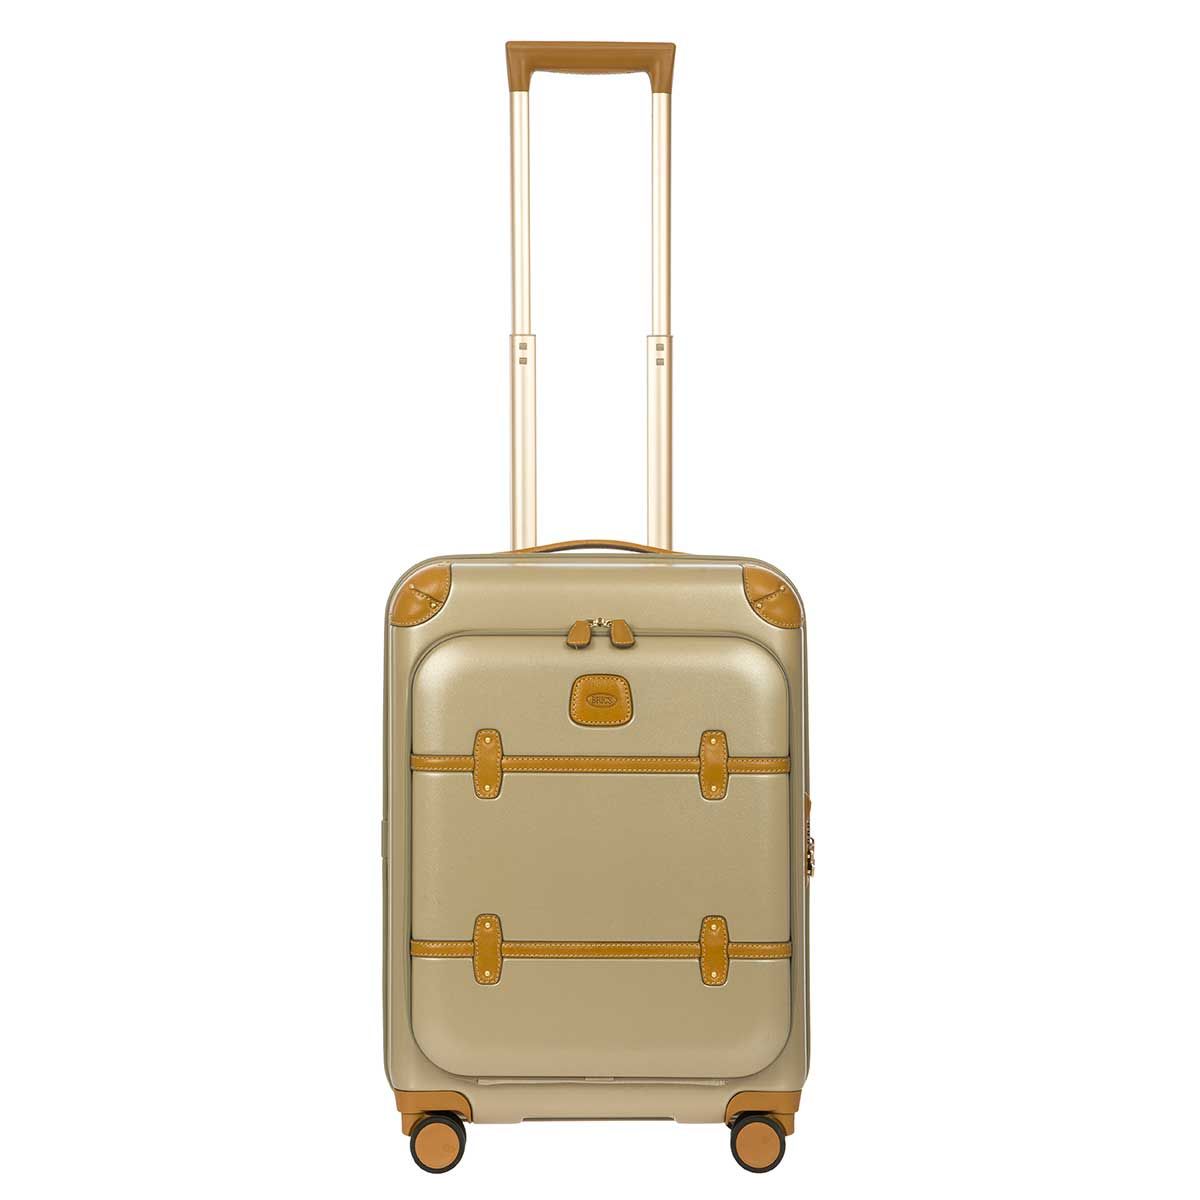 "Bellagio 21"" Spinner Trunk W / Pocket by Brics (Color: Gold)"